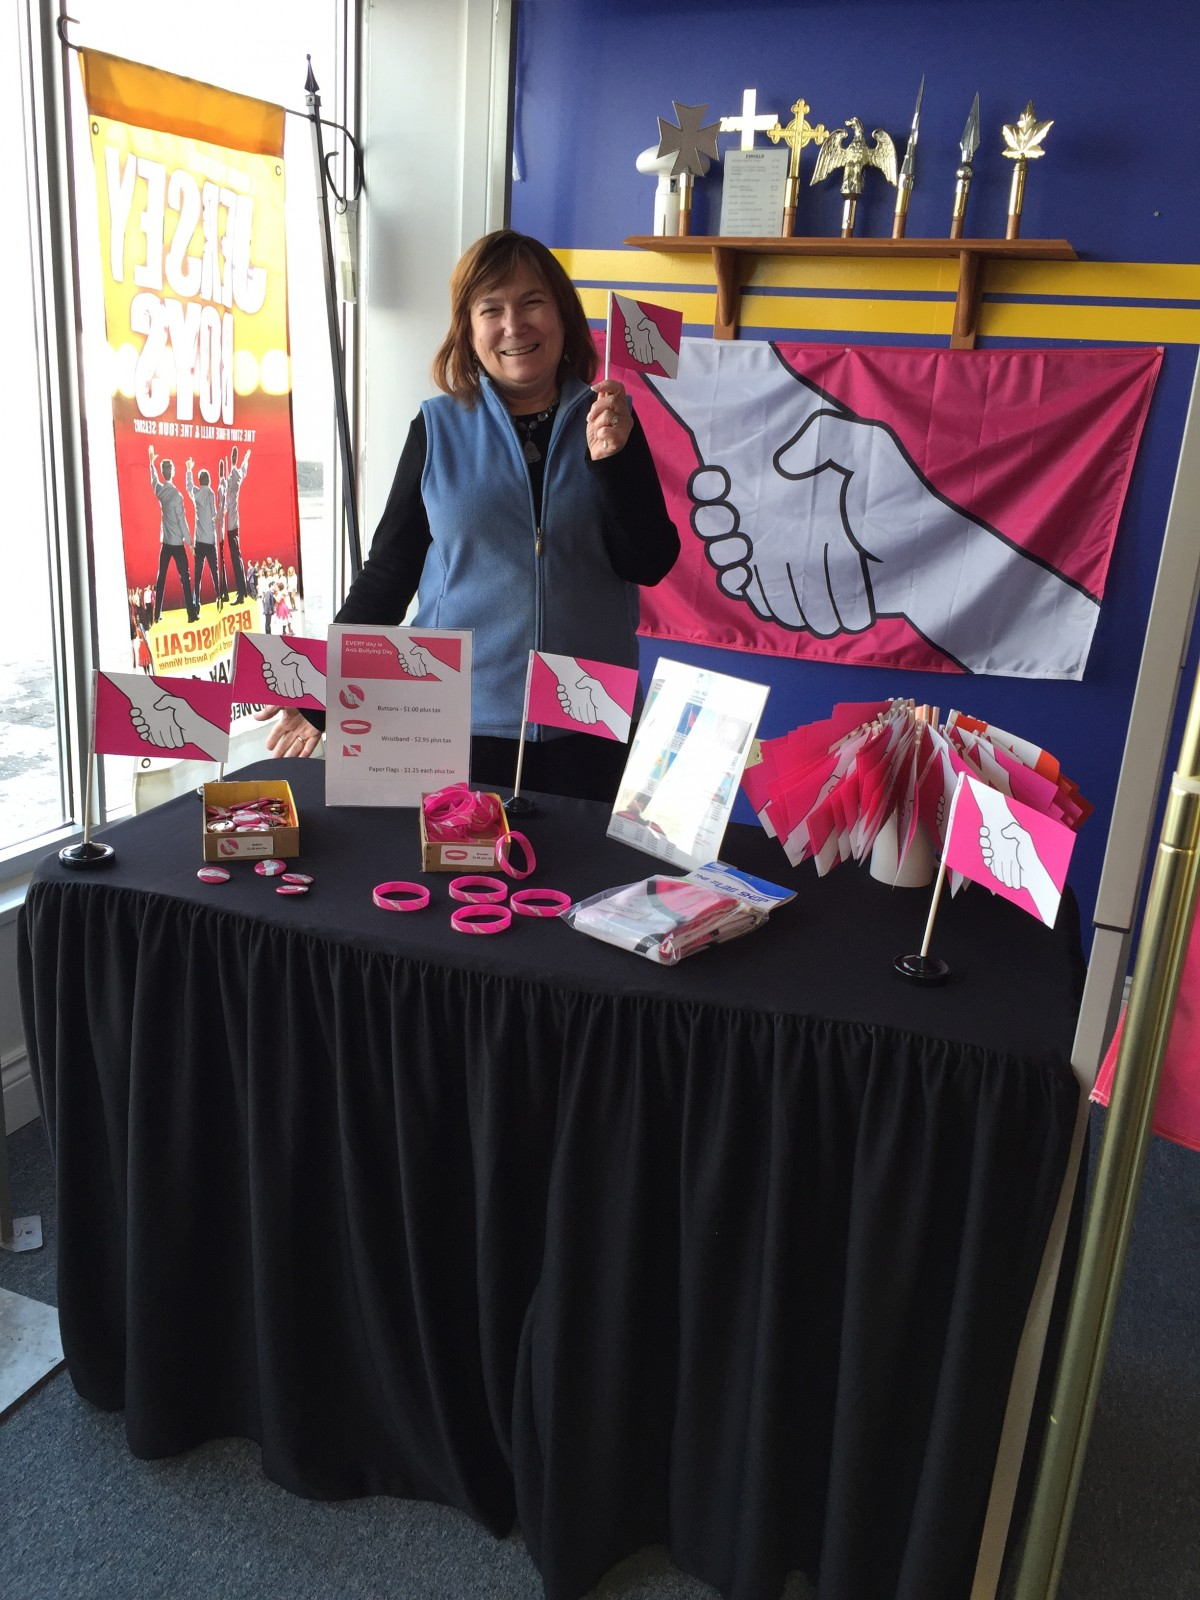 The Flag Shop adds new merchandise in support of anti-bullying